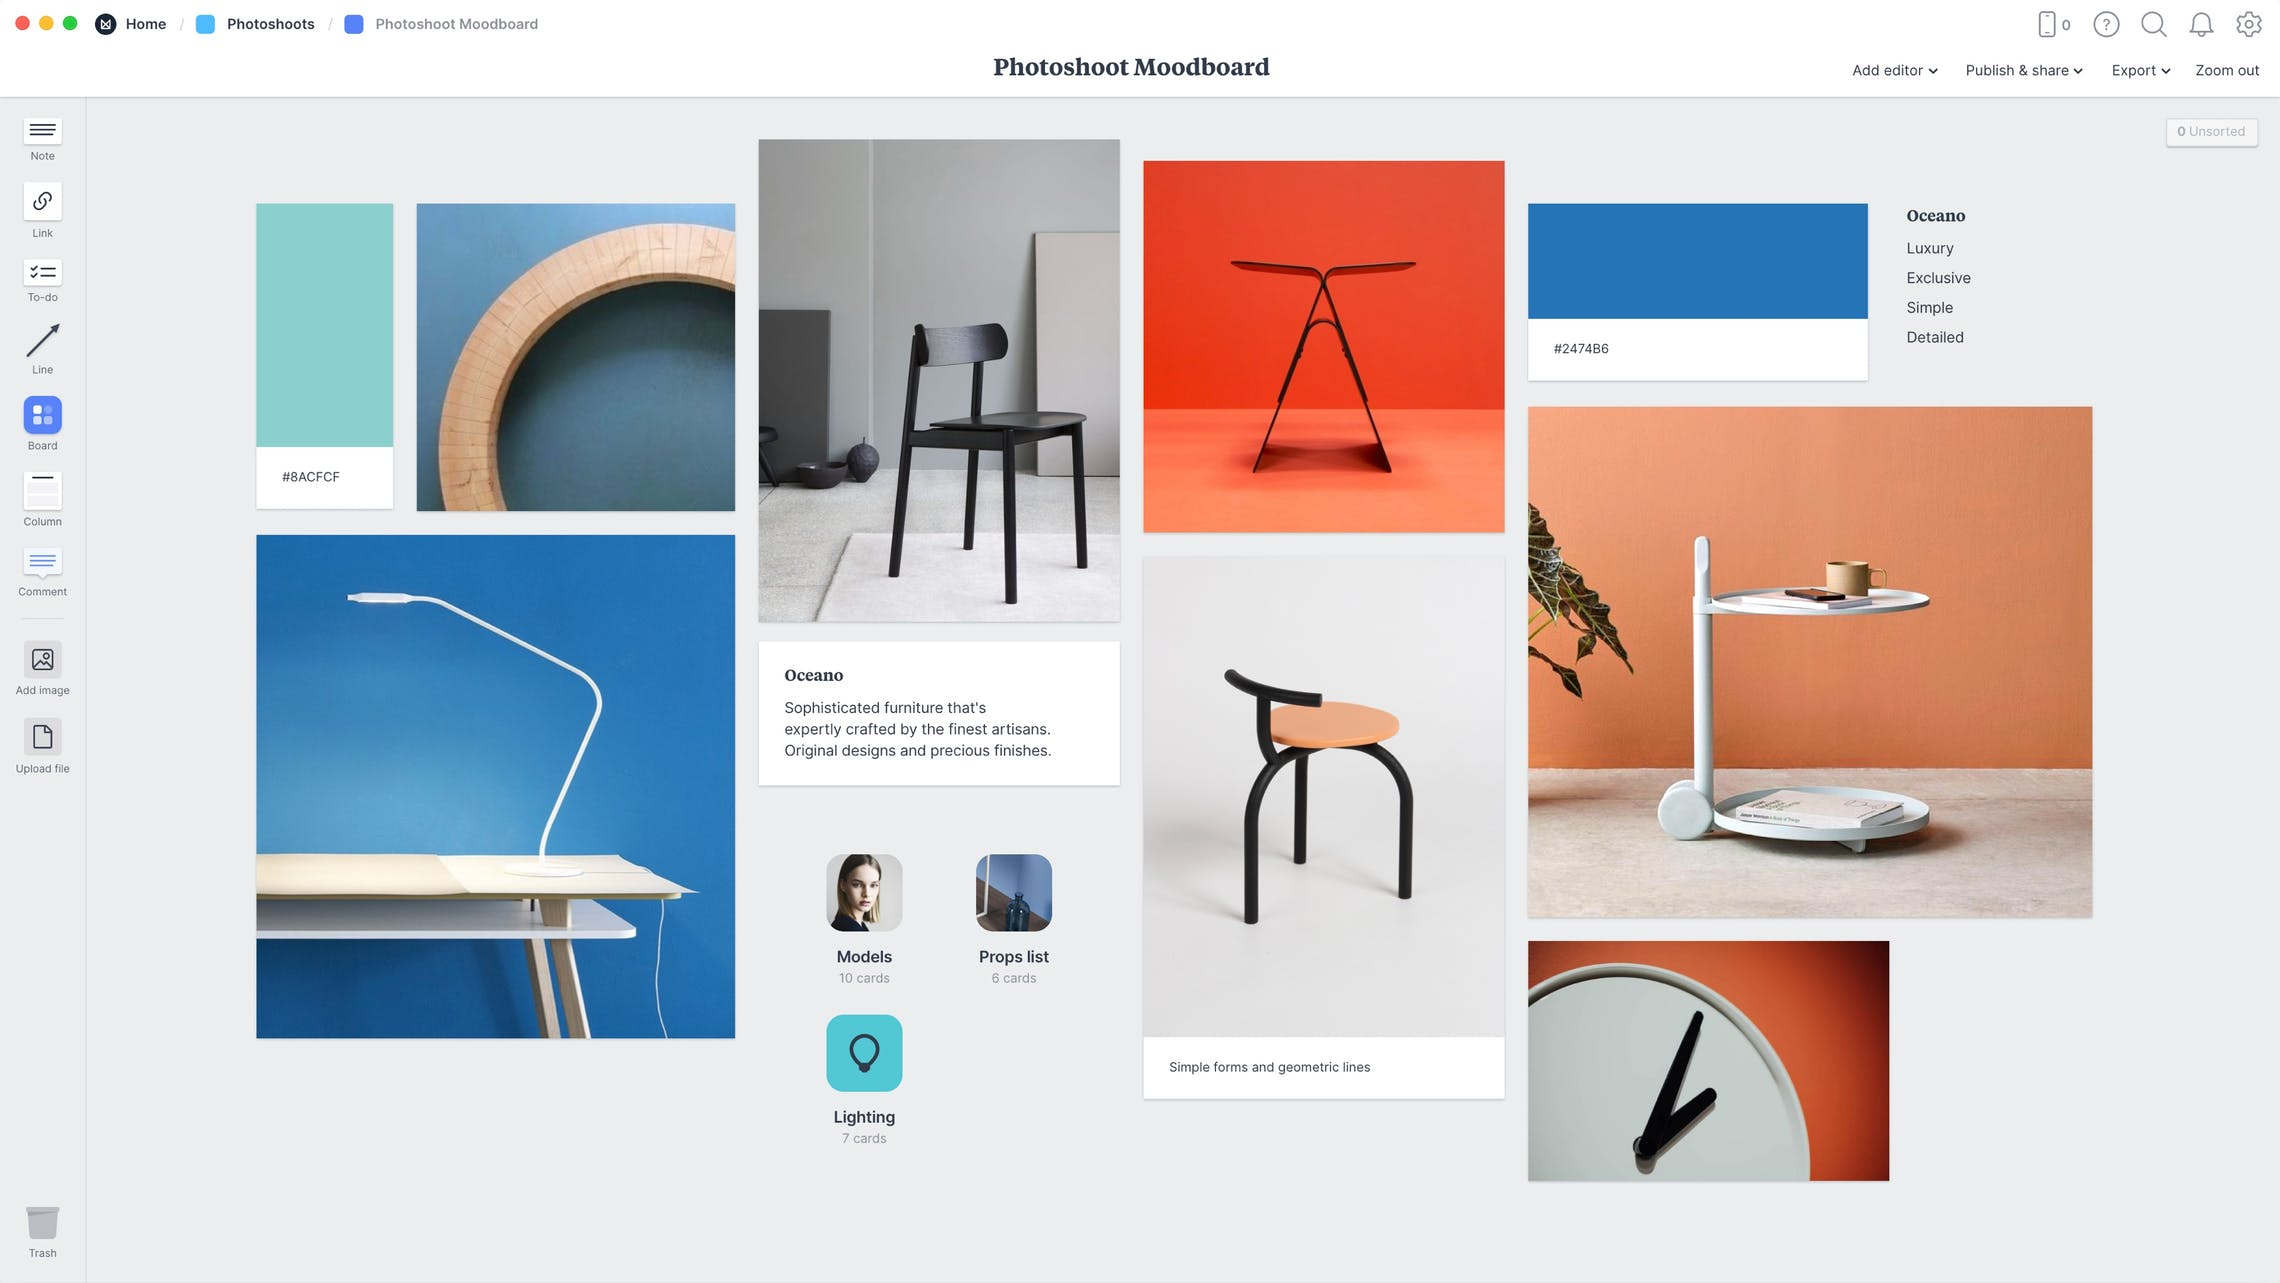 Photography Moodboard Template, within the Milanote app